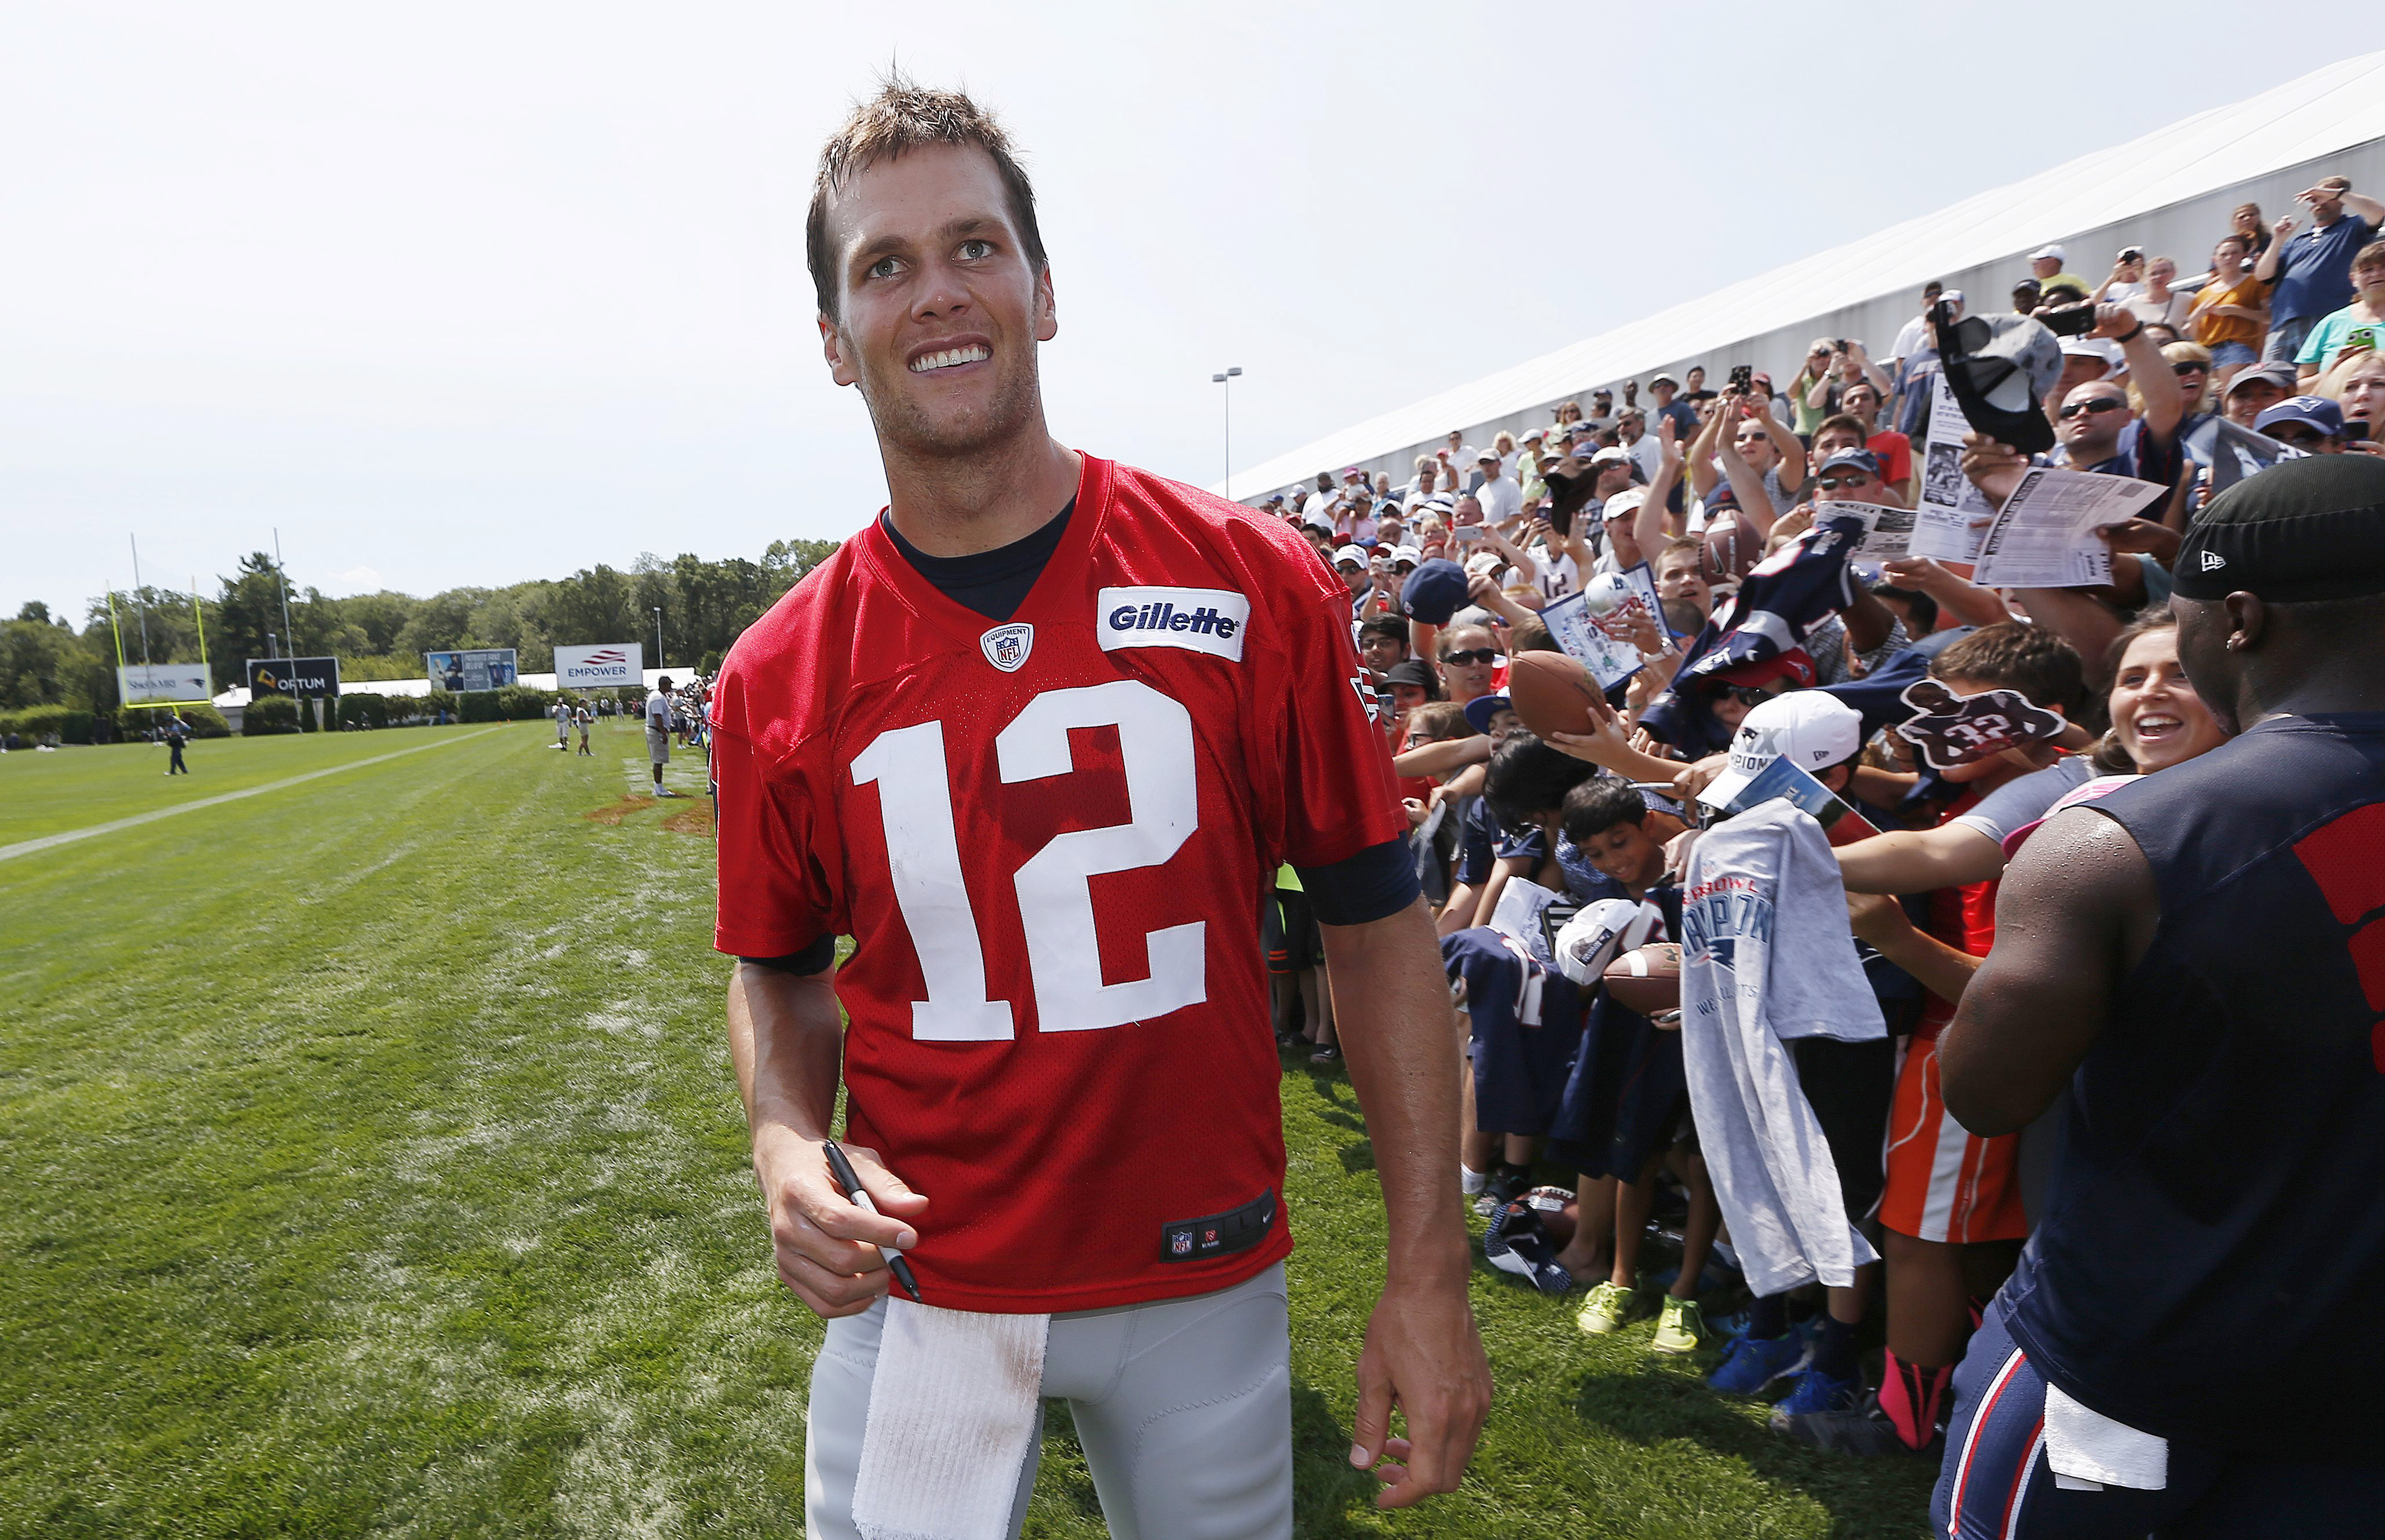 New England Patriots quarterback Tom Brady walks down the line of fans signing autographs during an NFL football training camp in Foxborough, Mass., Saturday, Aug. 1, 2015. (AP Photo/Michael Dwyer)